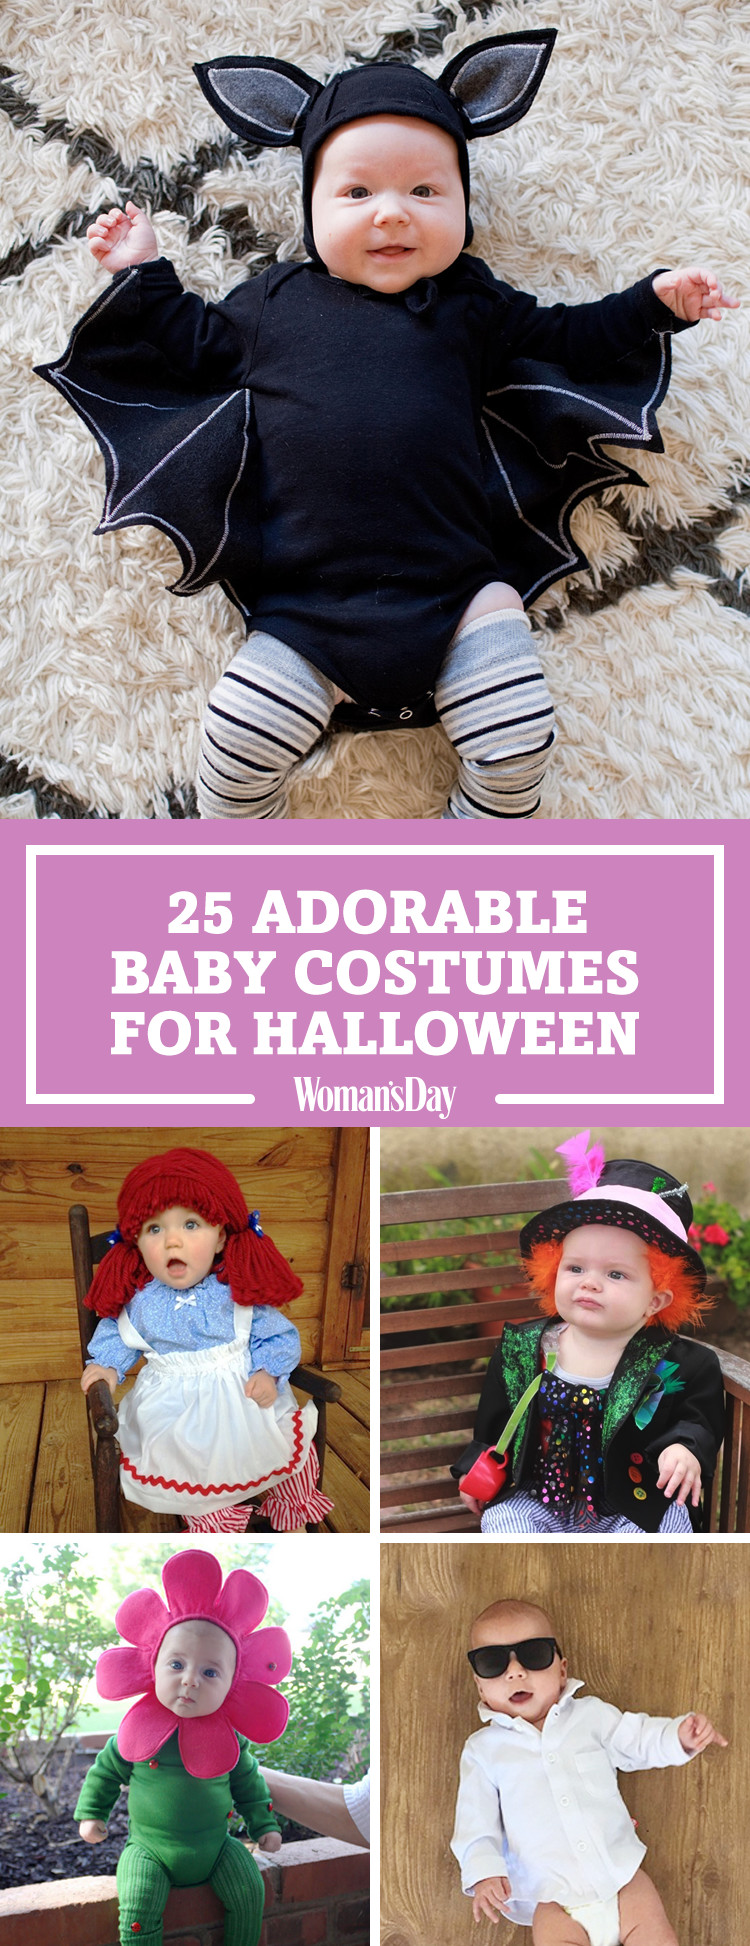 30 Cute Baby Halloween Costumes 2017 Best Ideas For Boy